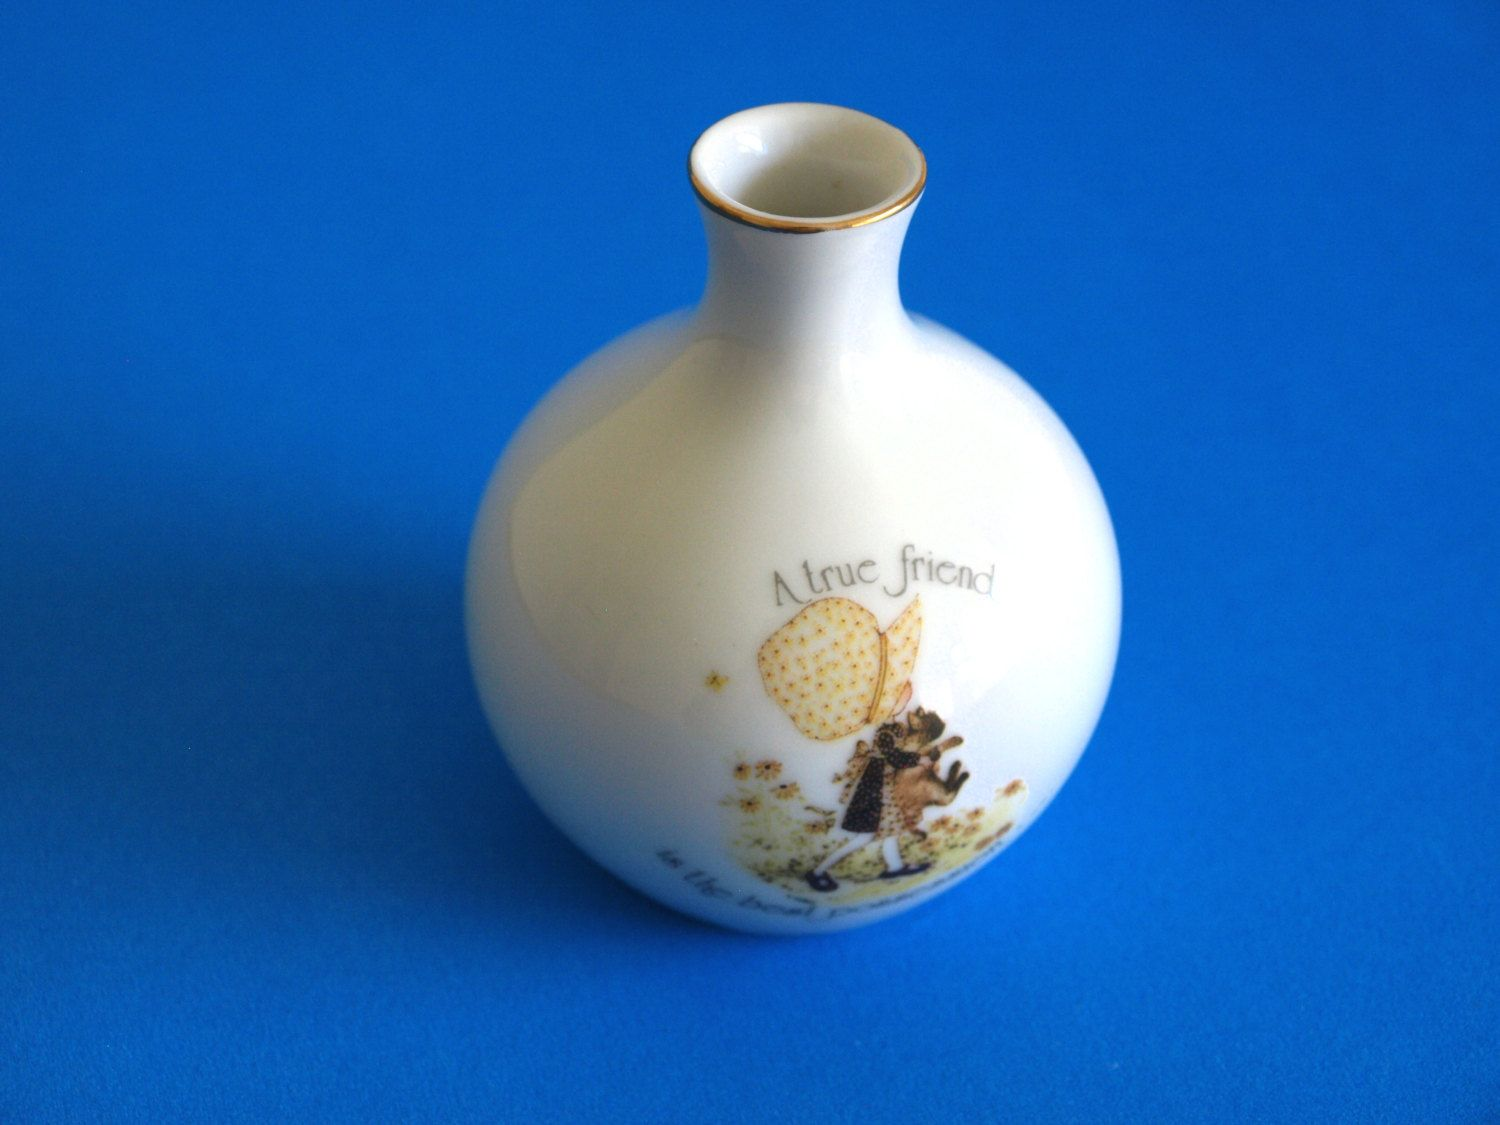 Holly hobbie bud vase a true friend is the best possession holly hobbie bud vase a true friend is the best possession retro children porcelain reviewsmspy